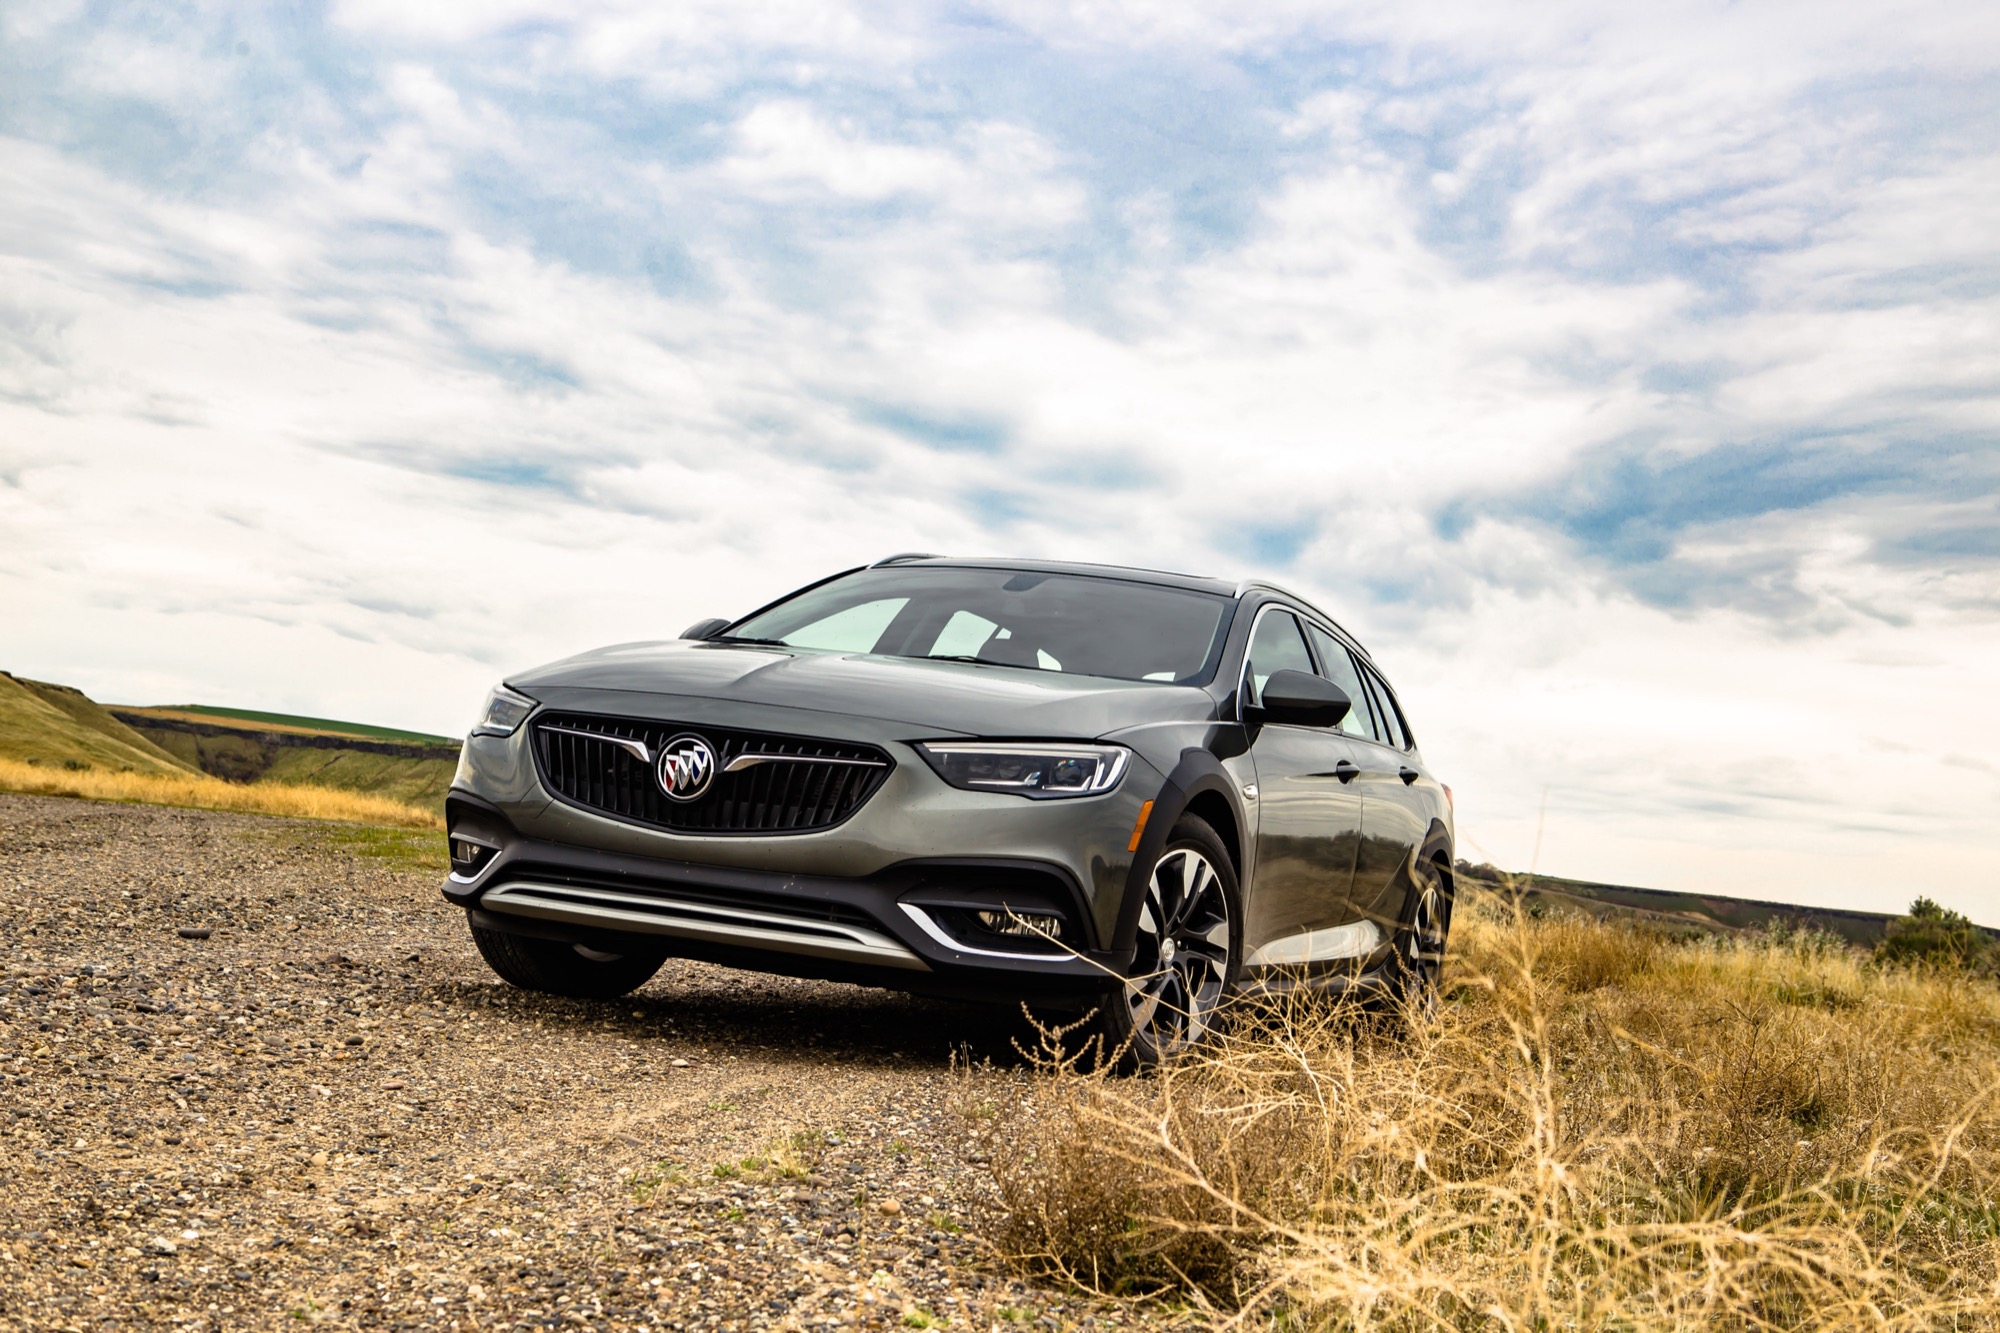 Buick Regal Discount Totals $6,250 In February 2020 | Gm 2022 Buick Regal Sportback Review, Price, 0-60